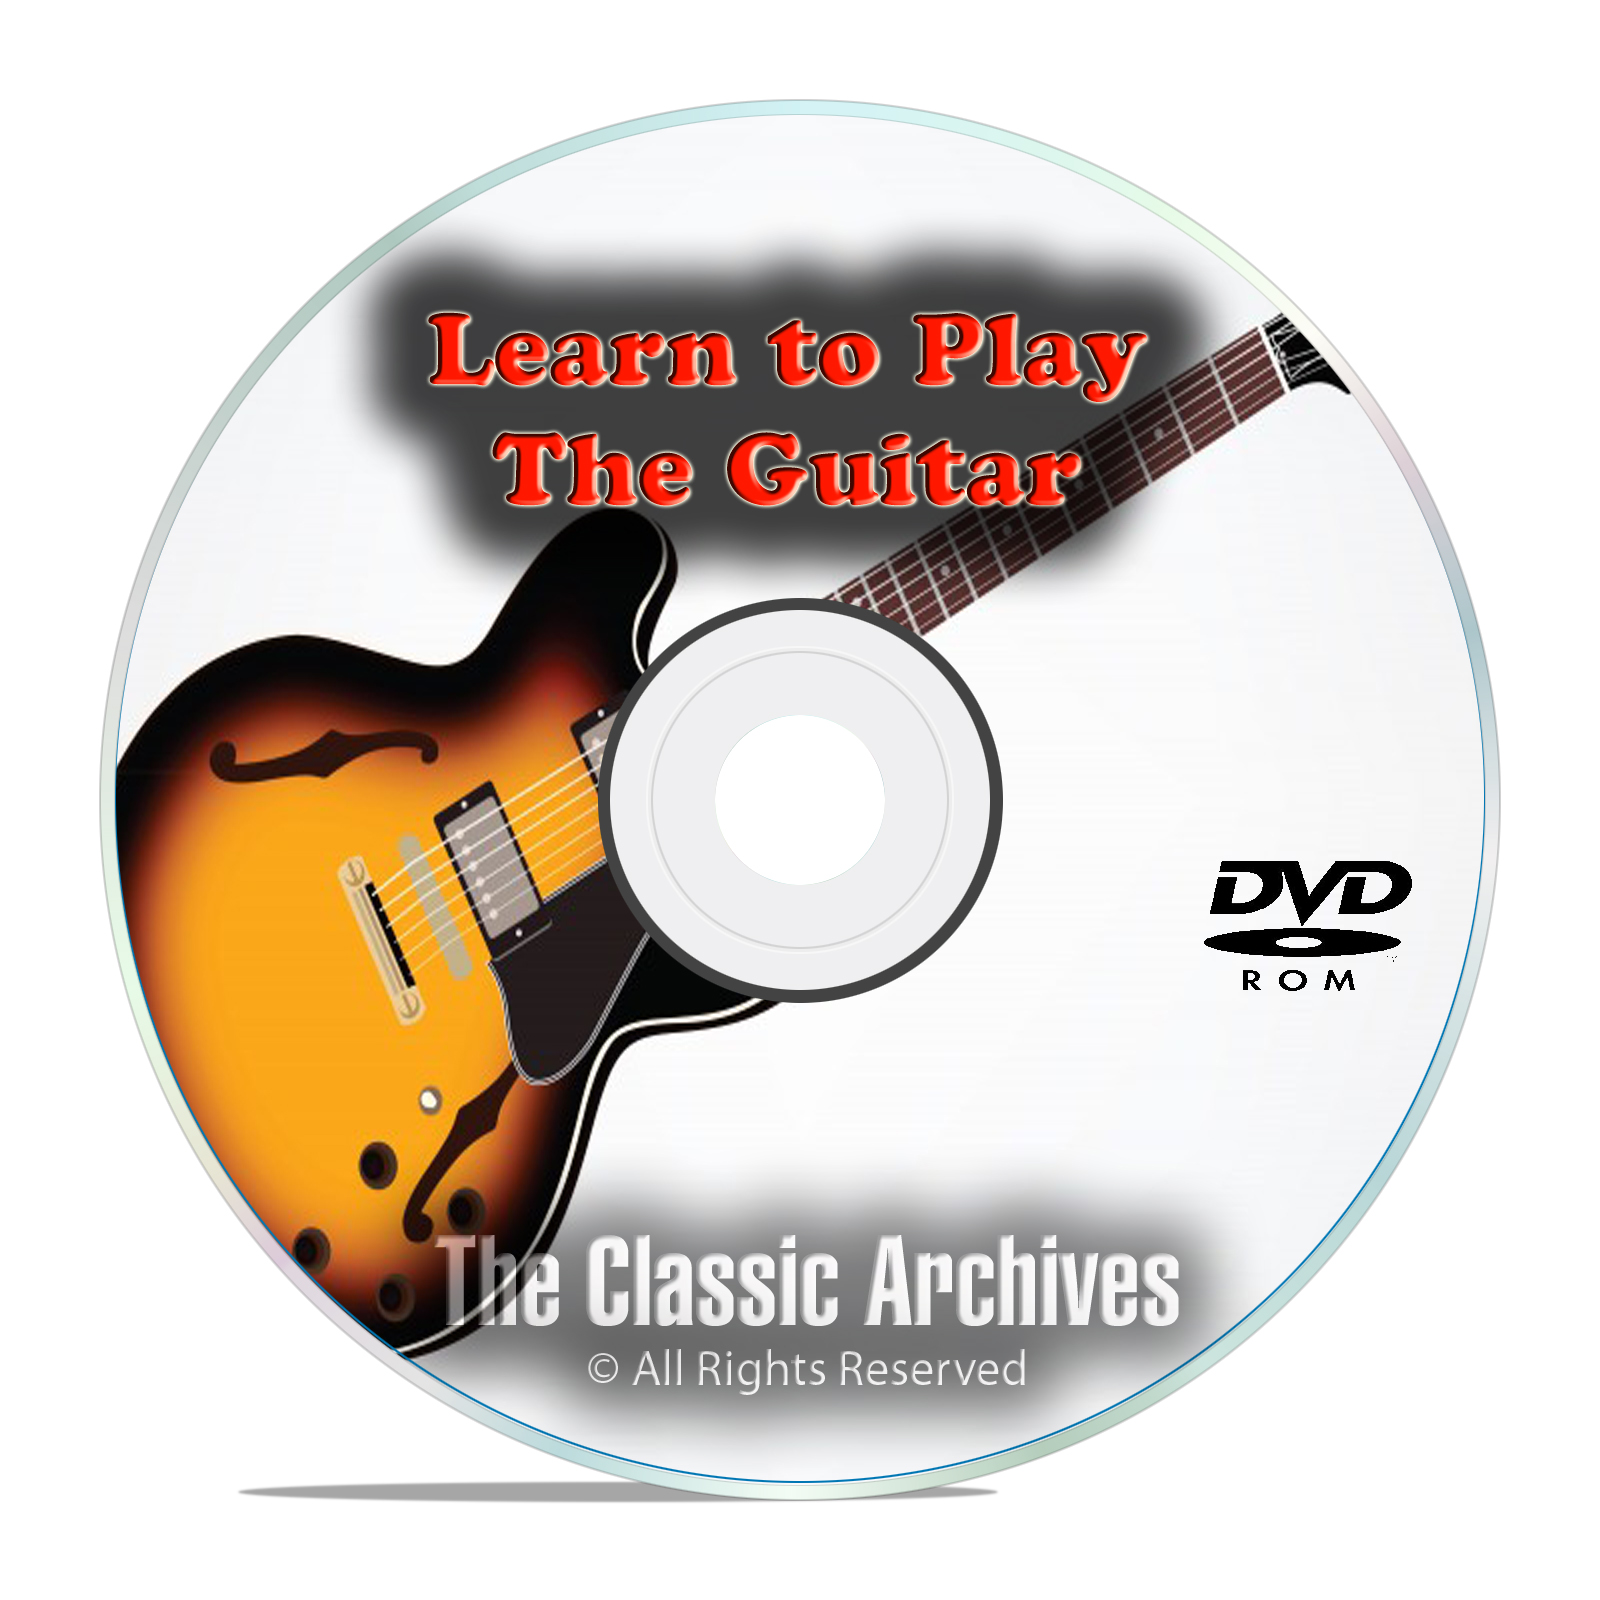 Learn How To Play the Guitar, Electric or Acoustic, Tutorial Lessons DVD